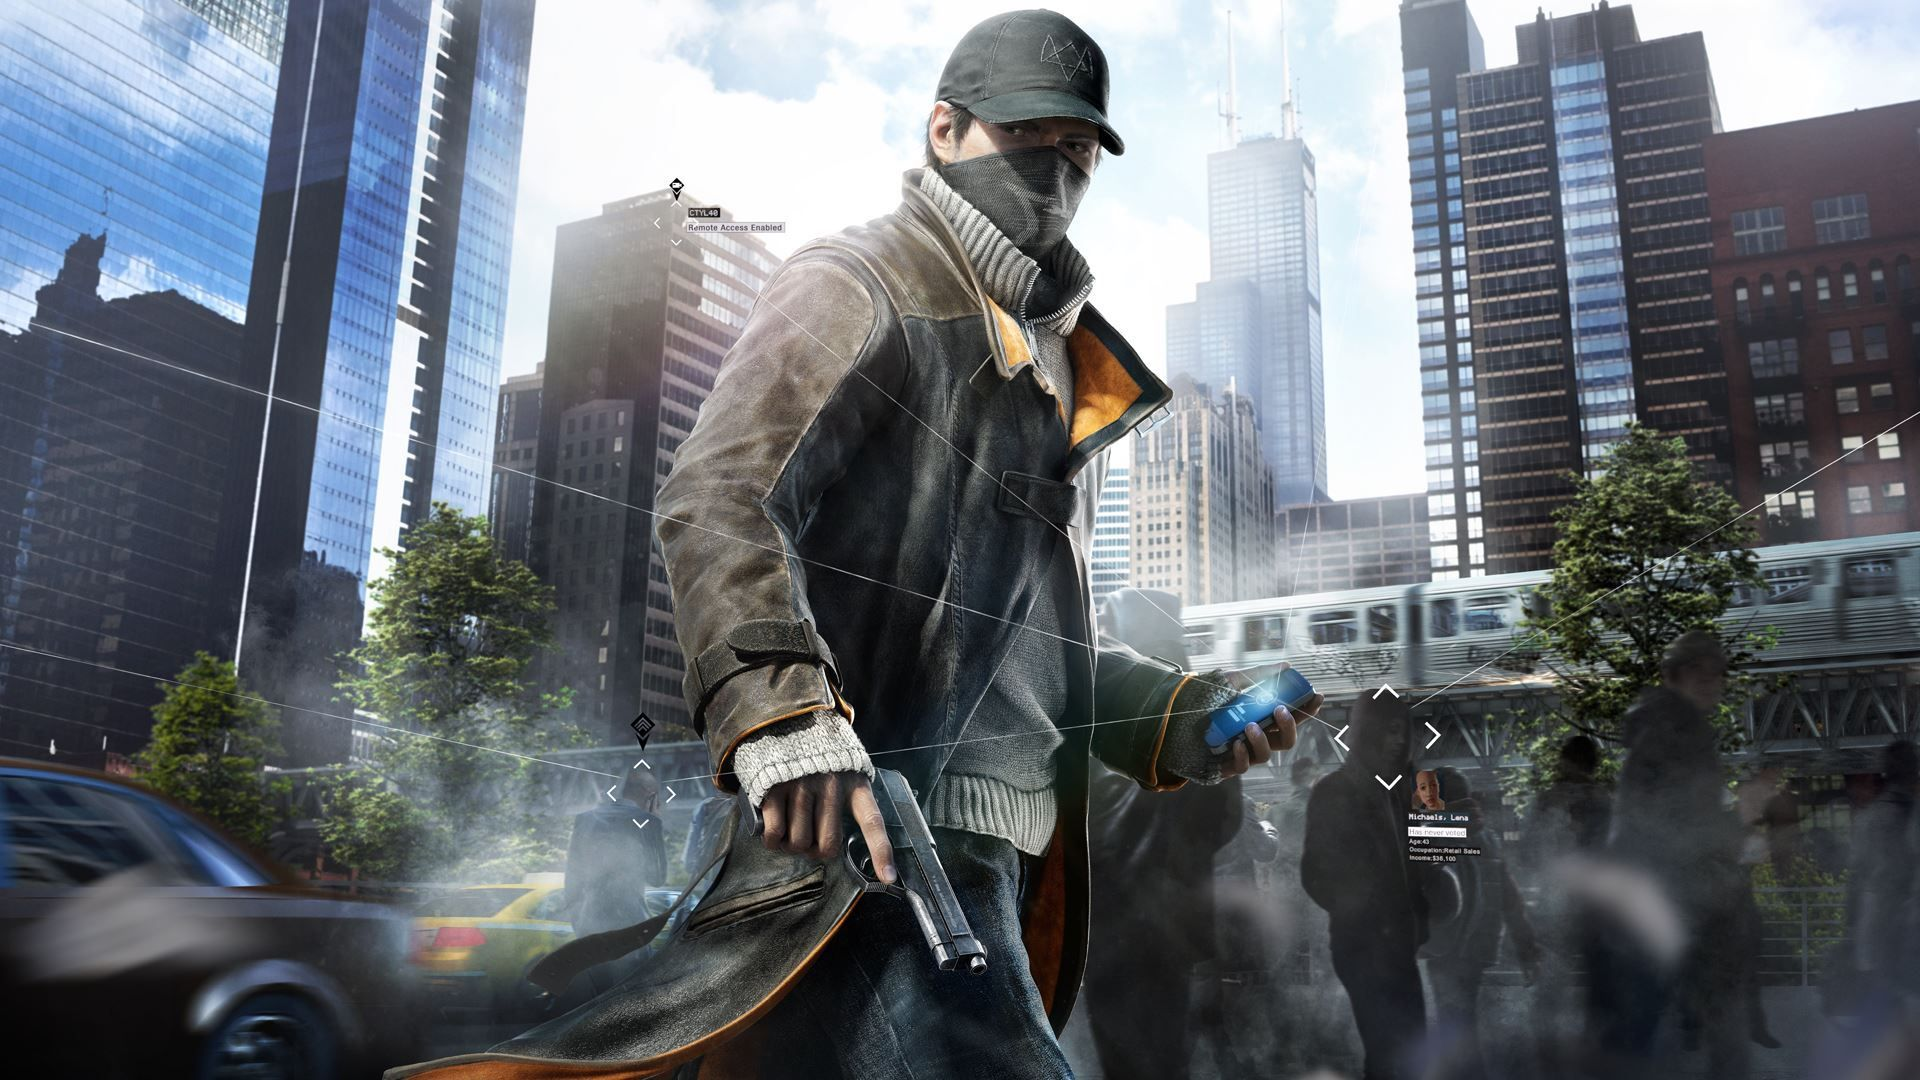 Watch Dogs Wallpaper Hd 1080p Game Hd Wallpapers